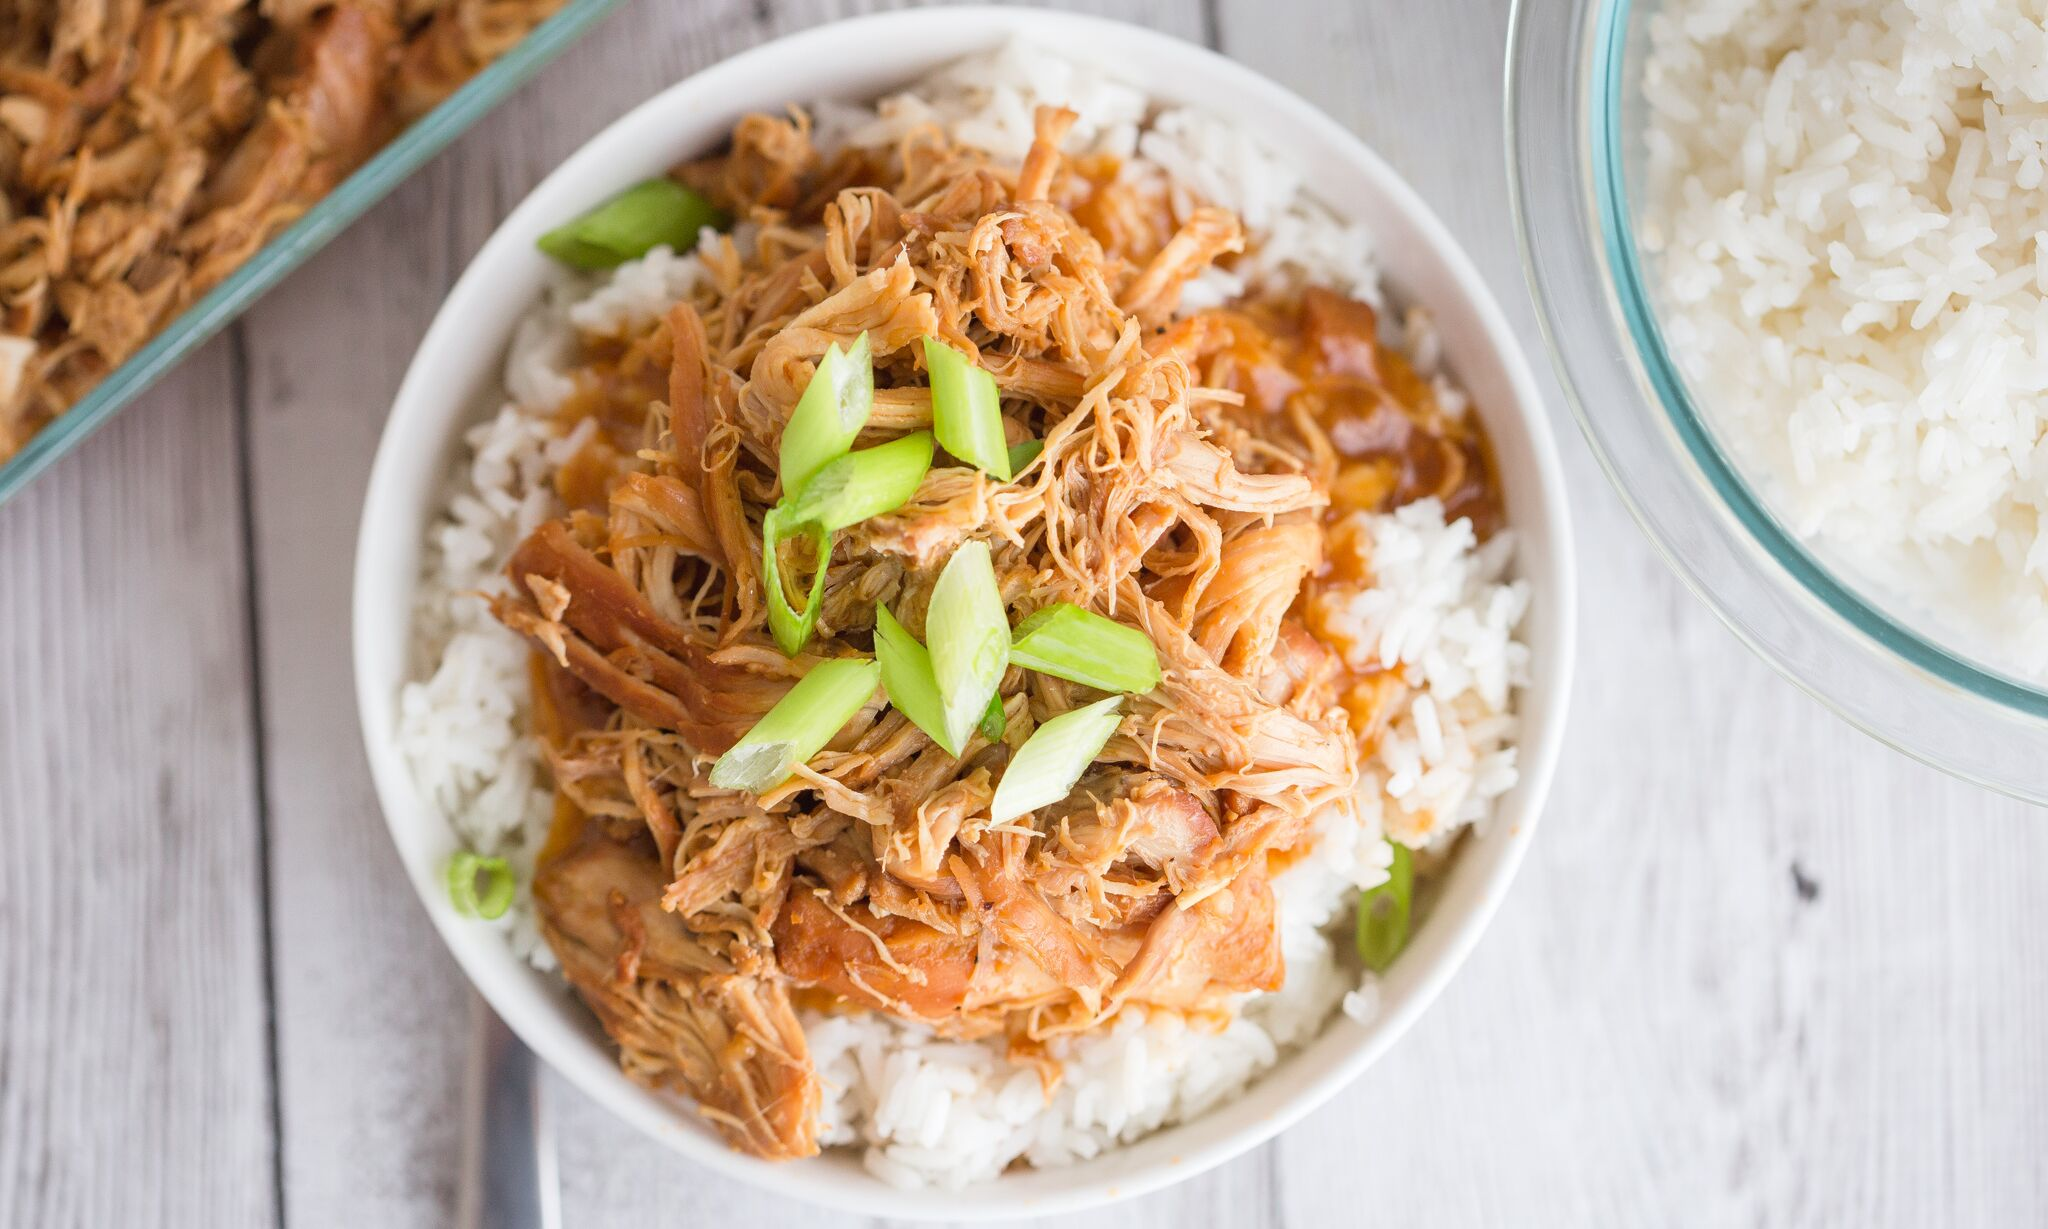 Serve cooked chicken over rice topped with green onions.